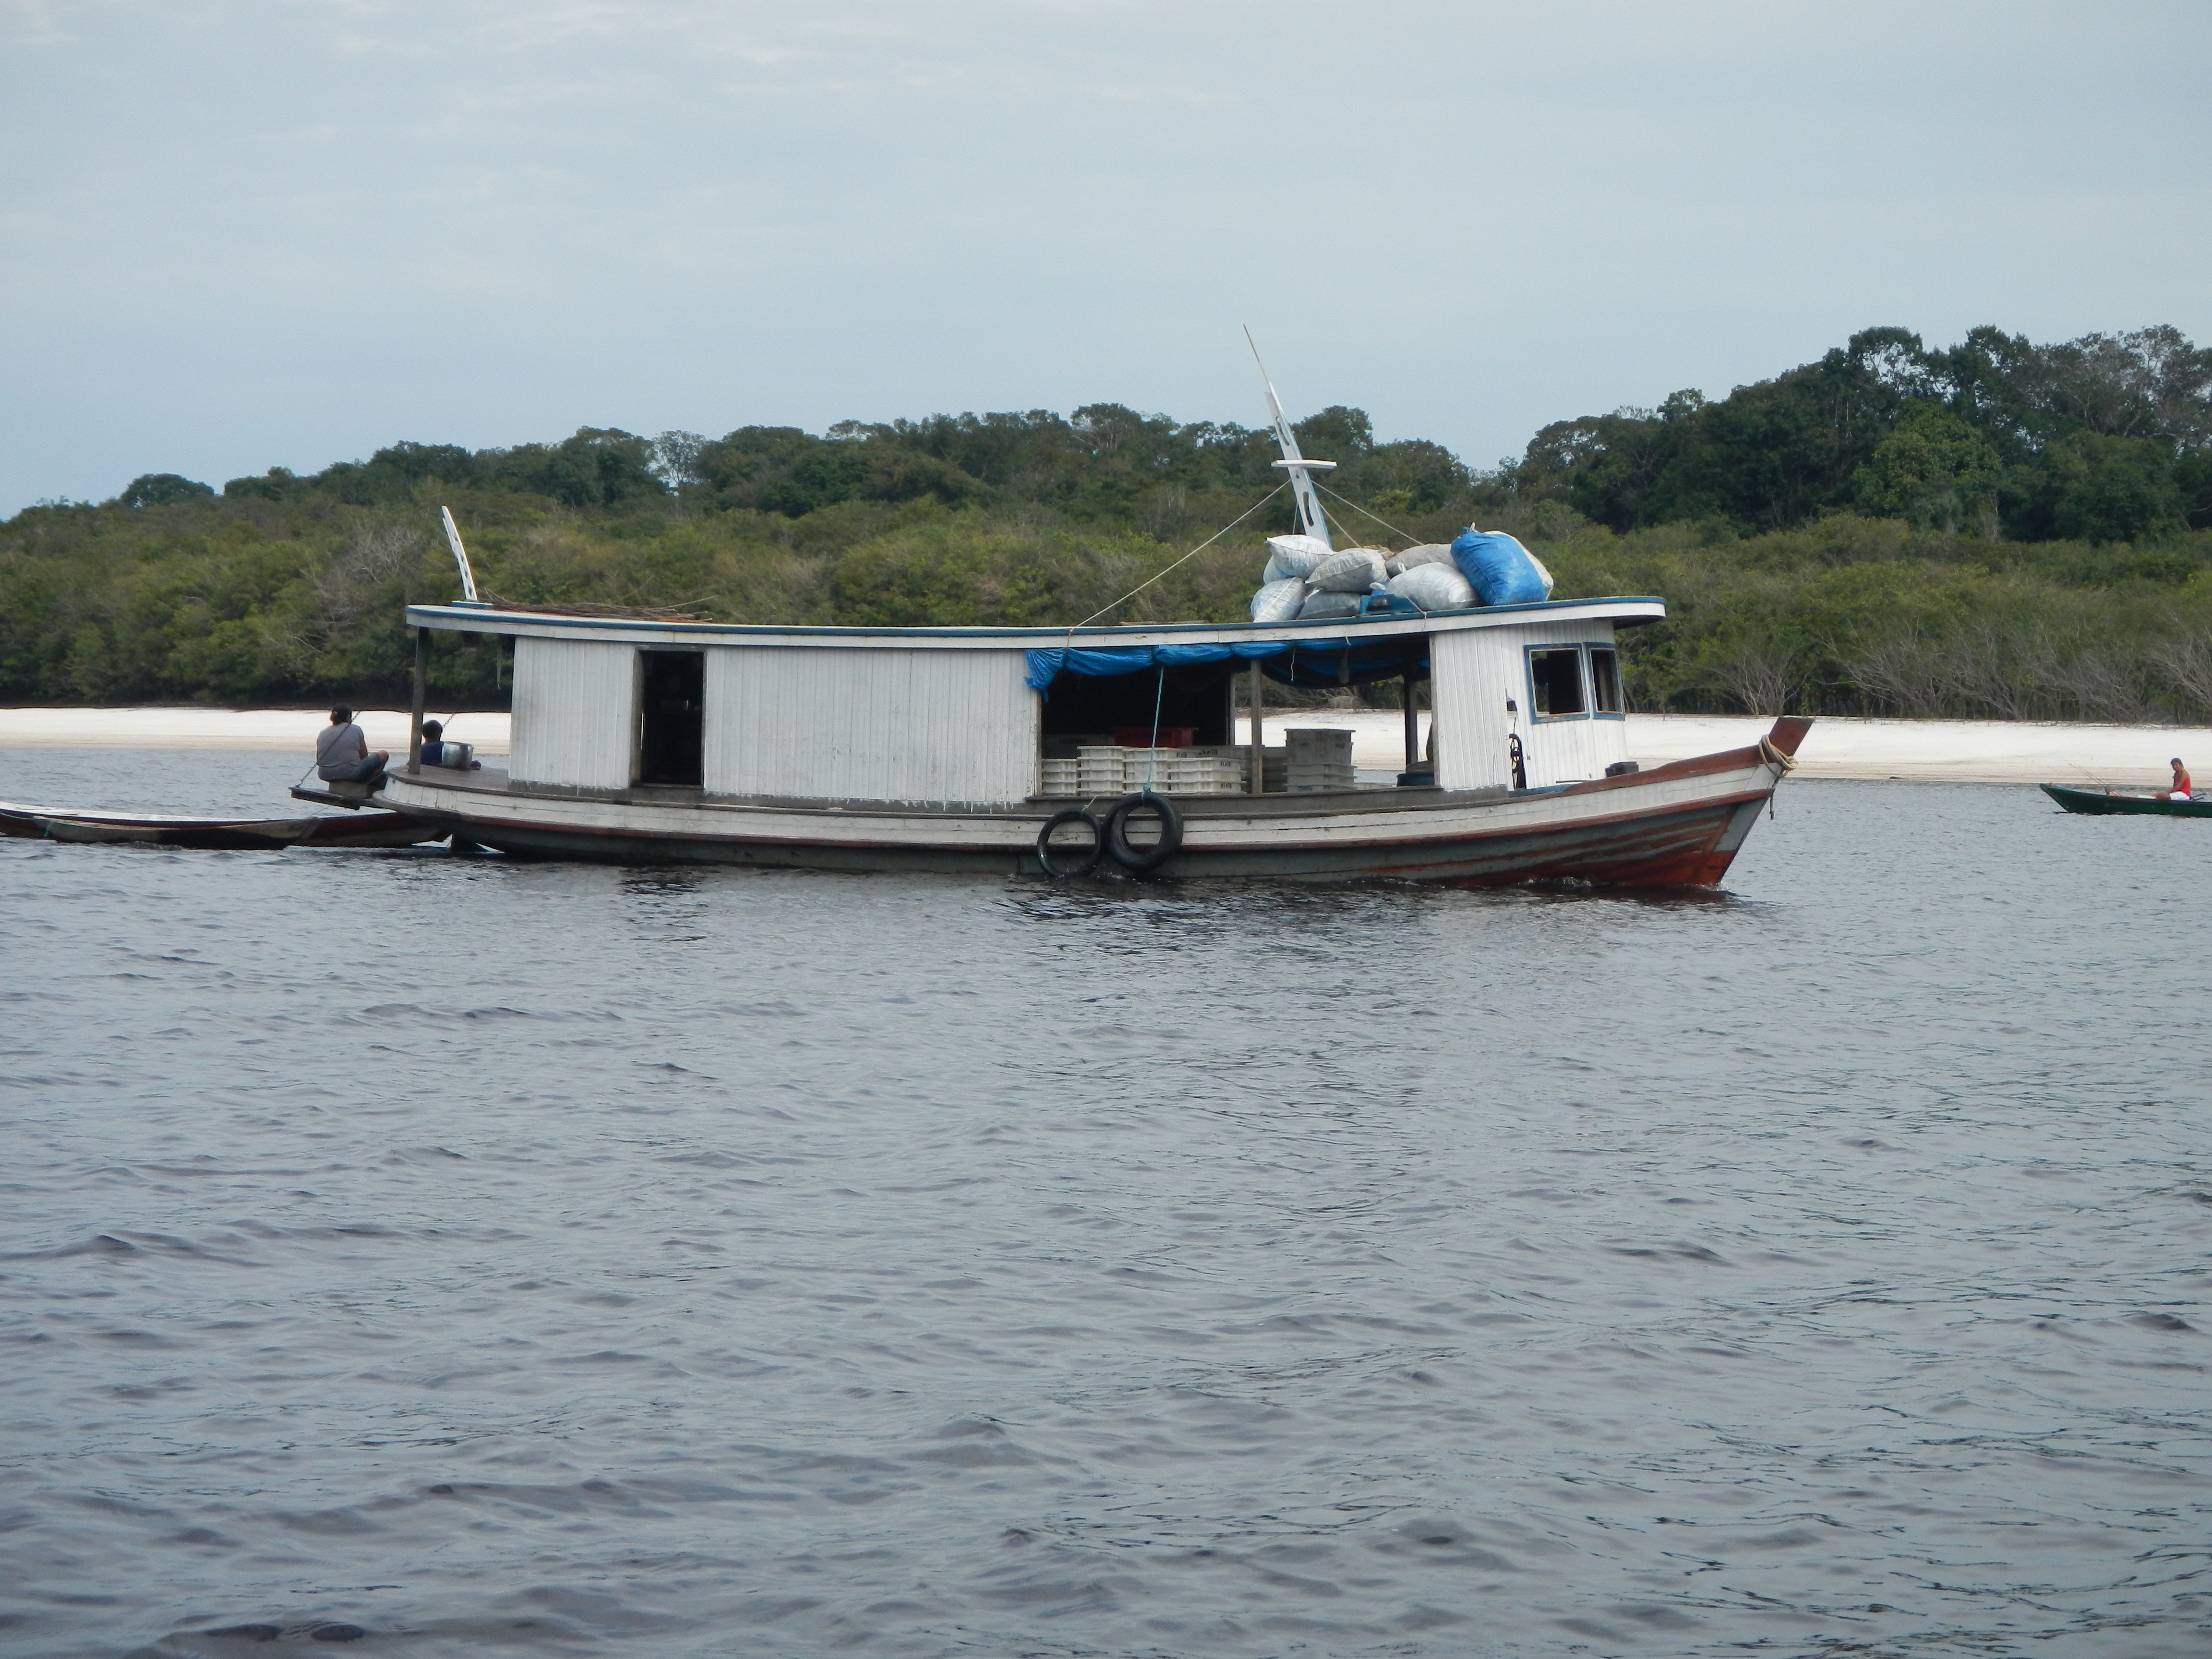 The fish travel to the export facilities by boat